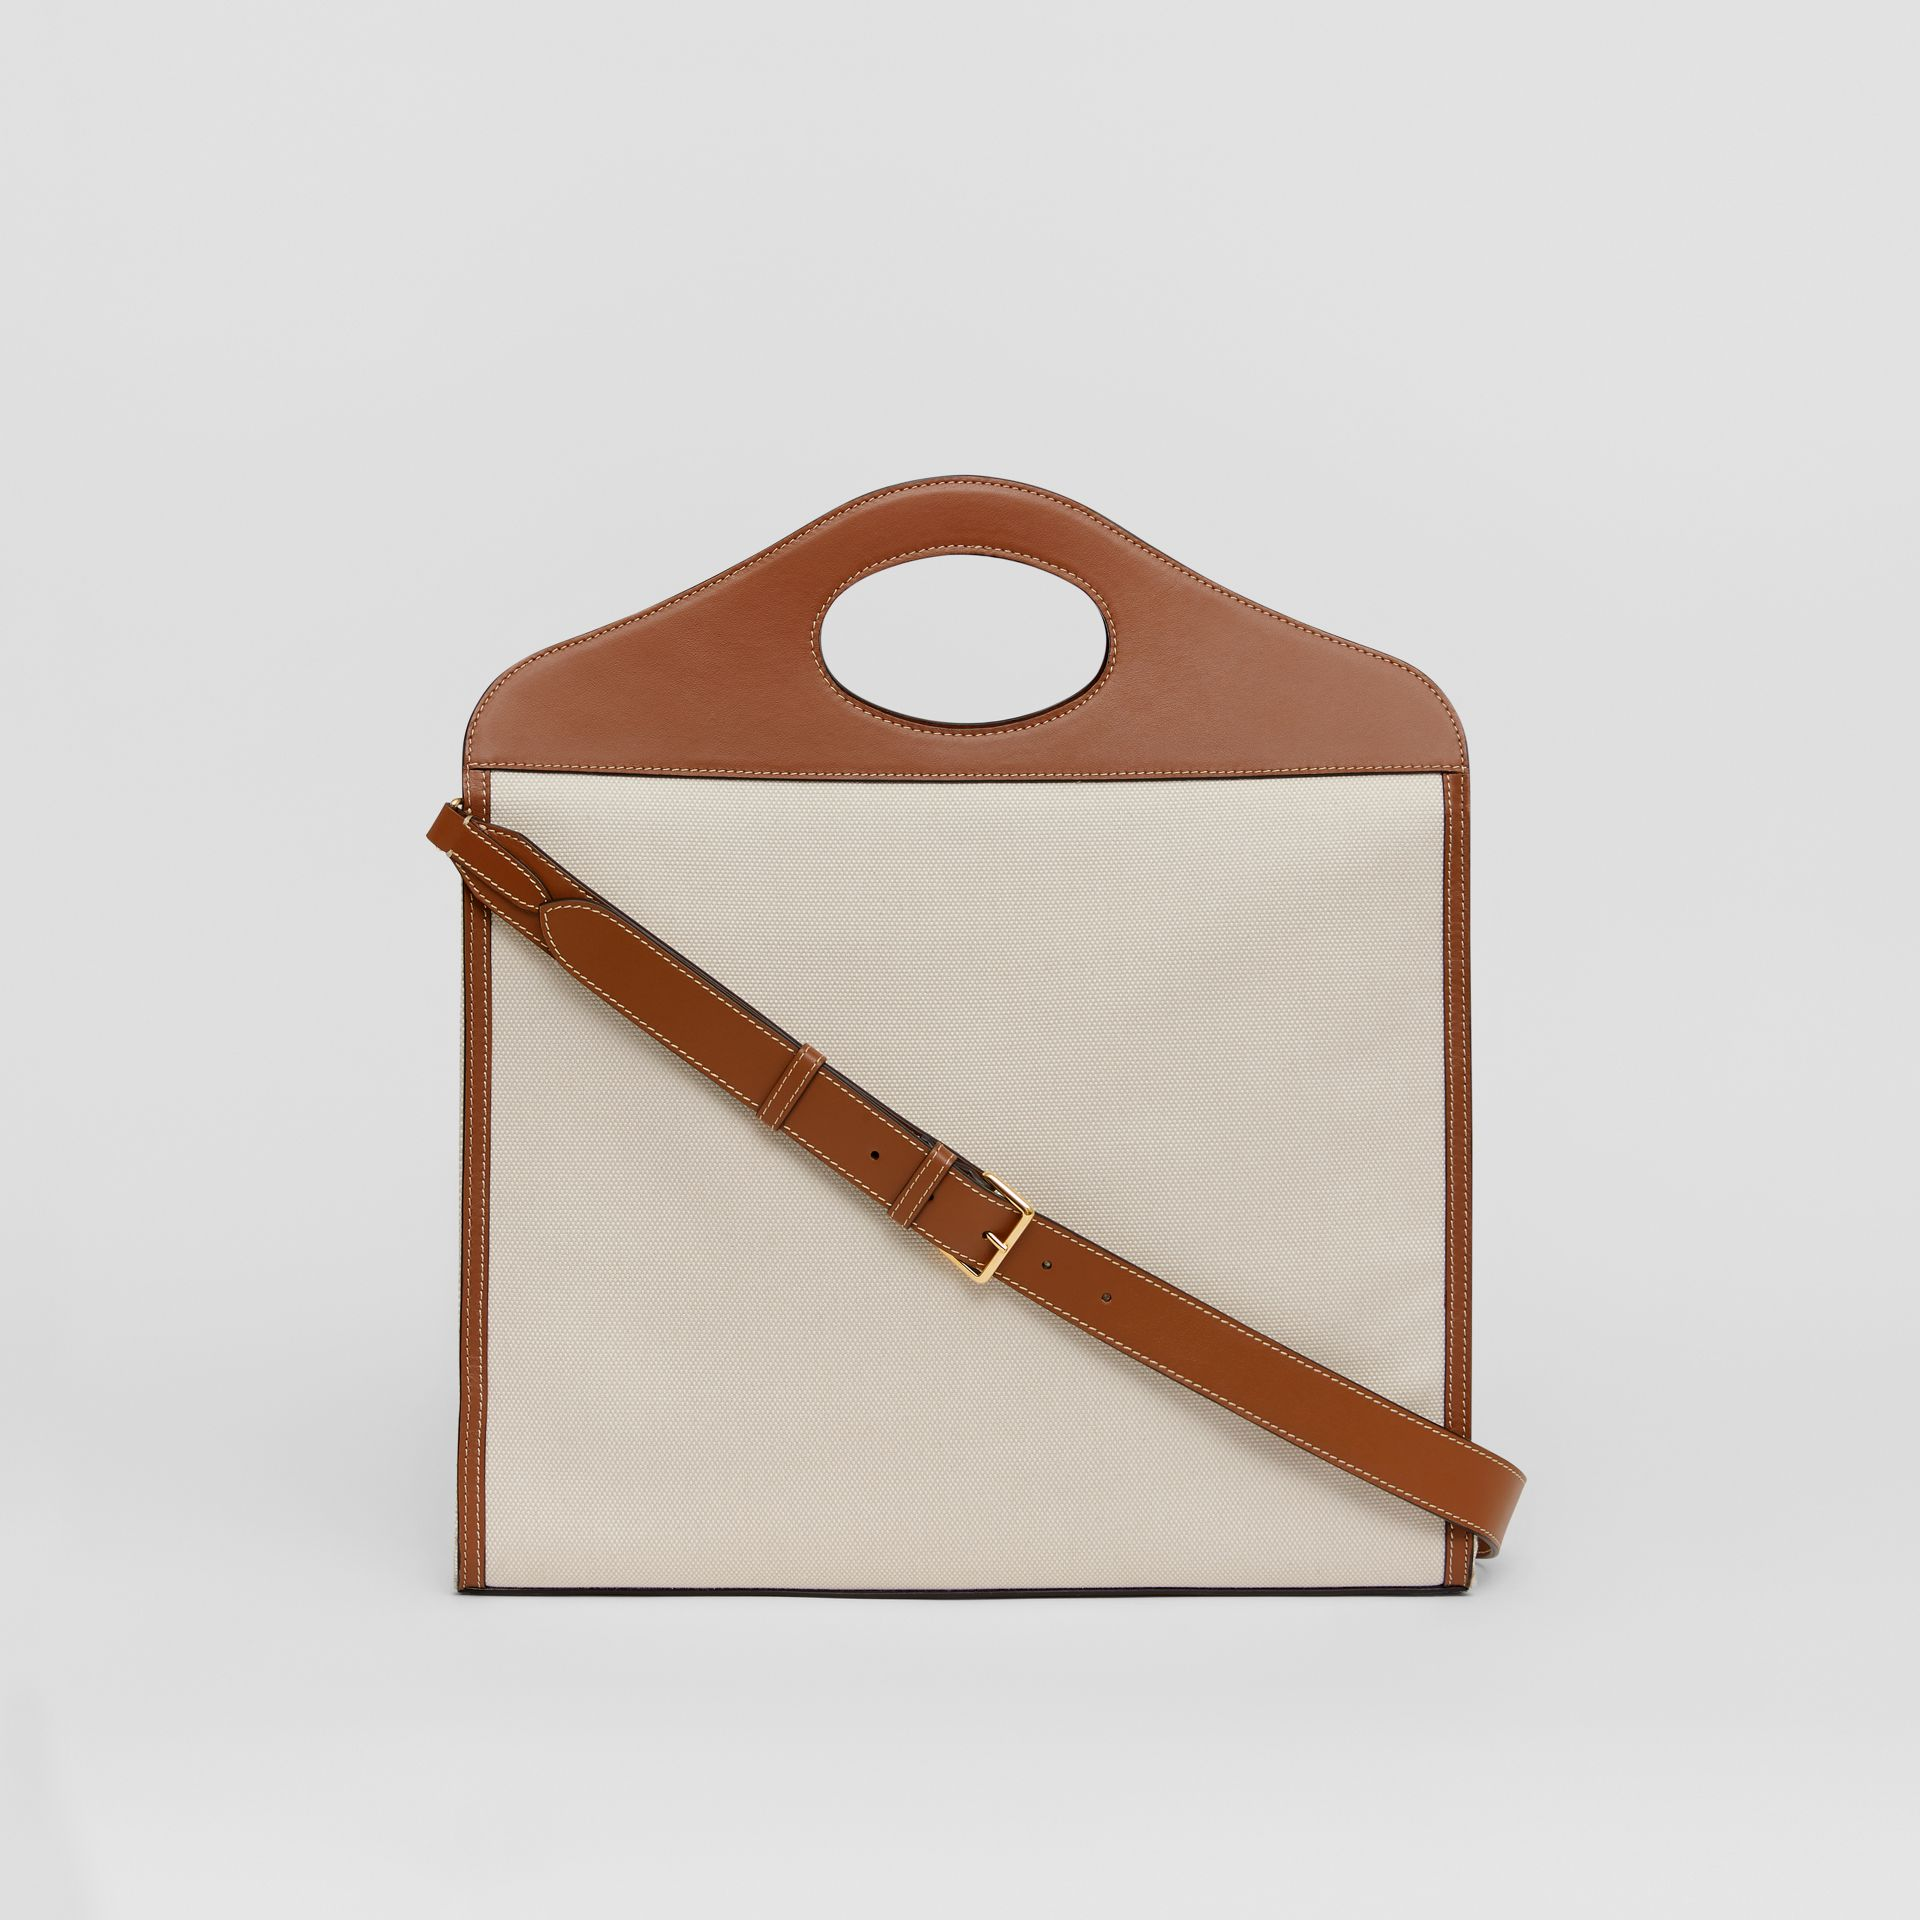 Medium Two-tone Canvas and Leather Pocket Bag in Natural/malt Brown - Women | Burberry - gallery image 7